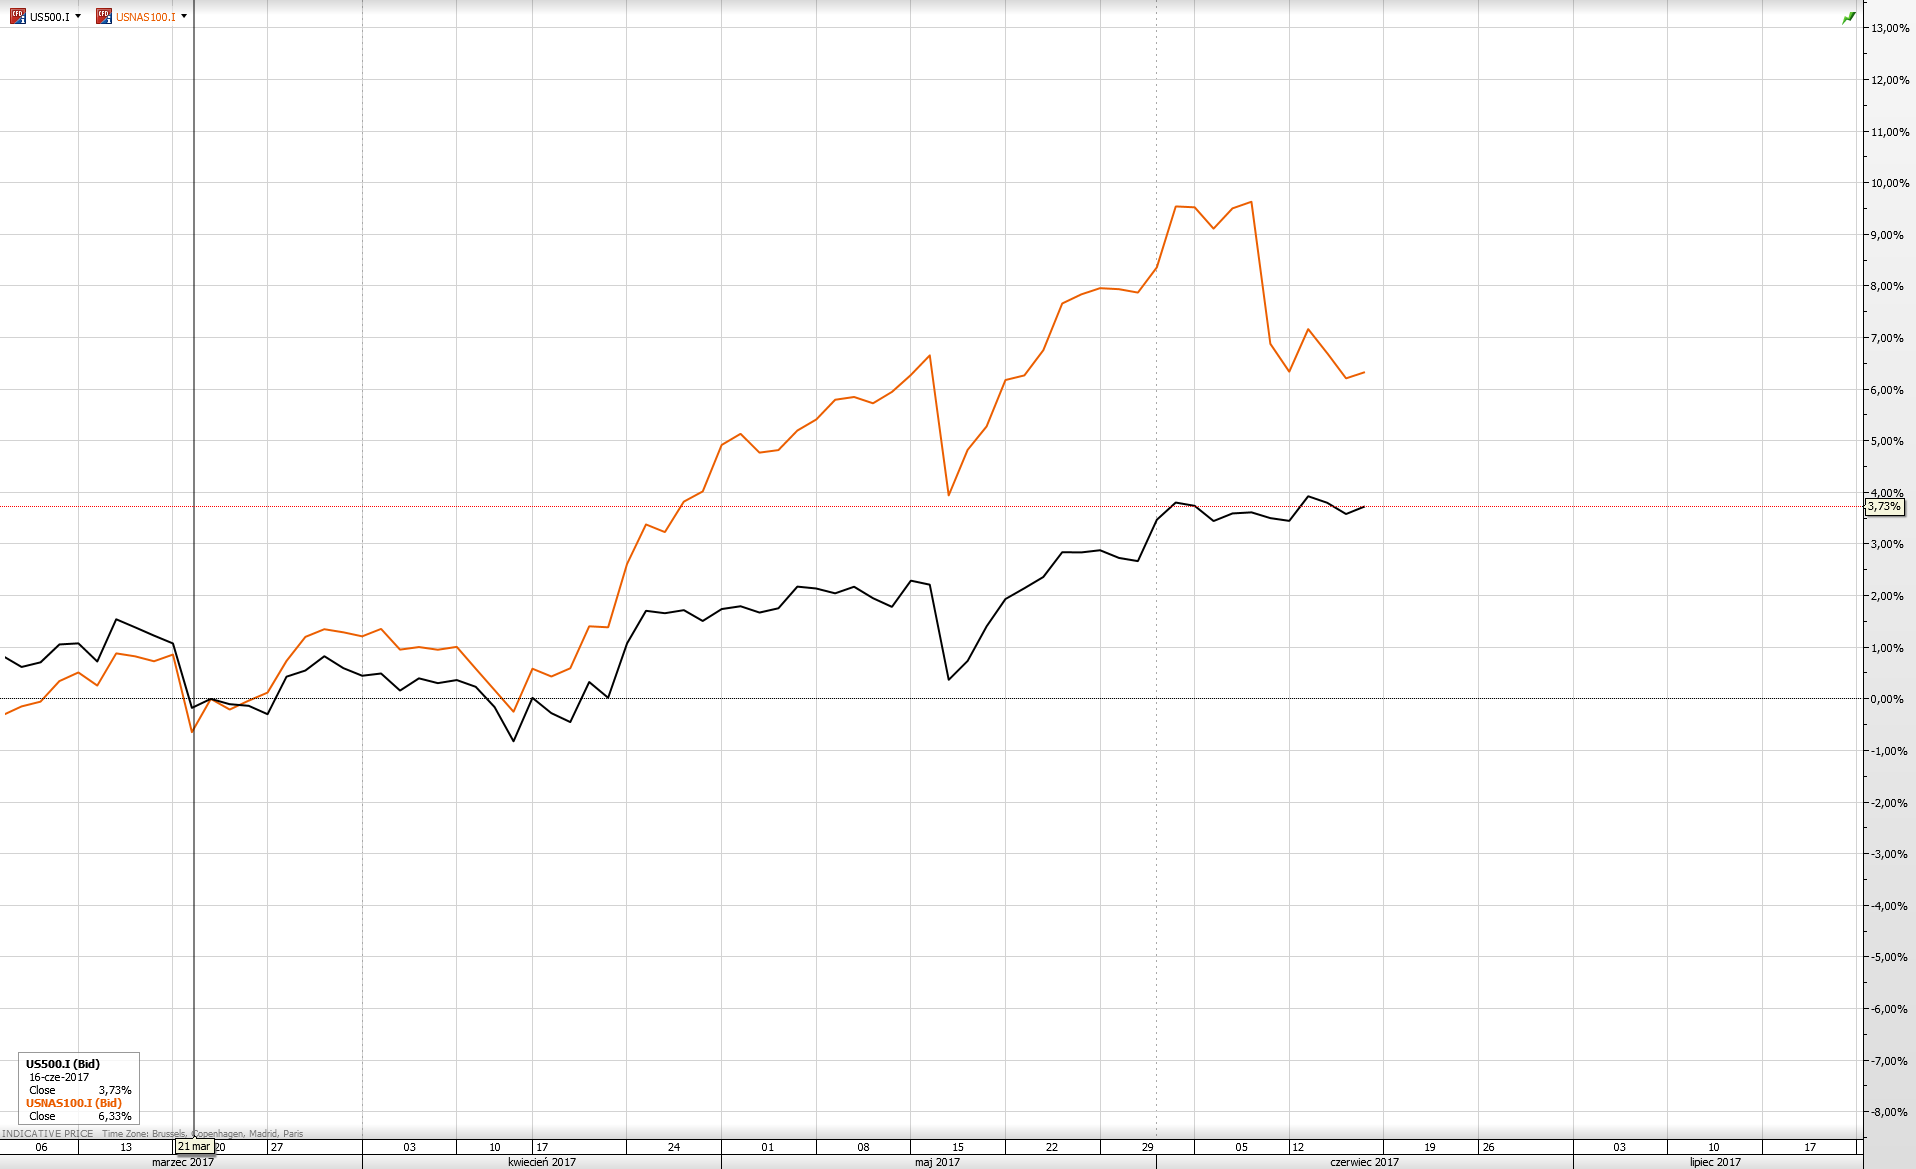 SP500 vs NASDAQ100 %